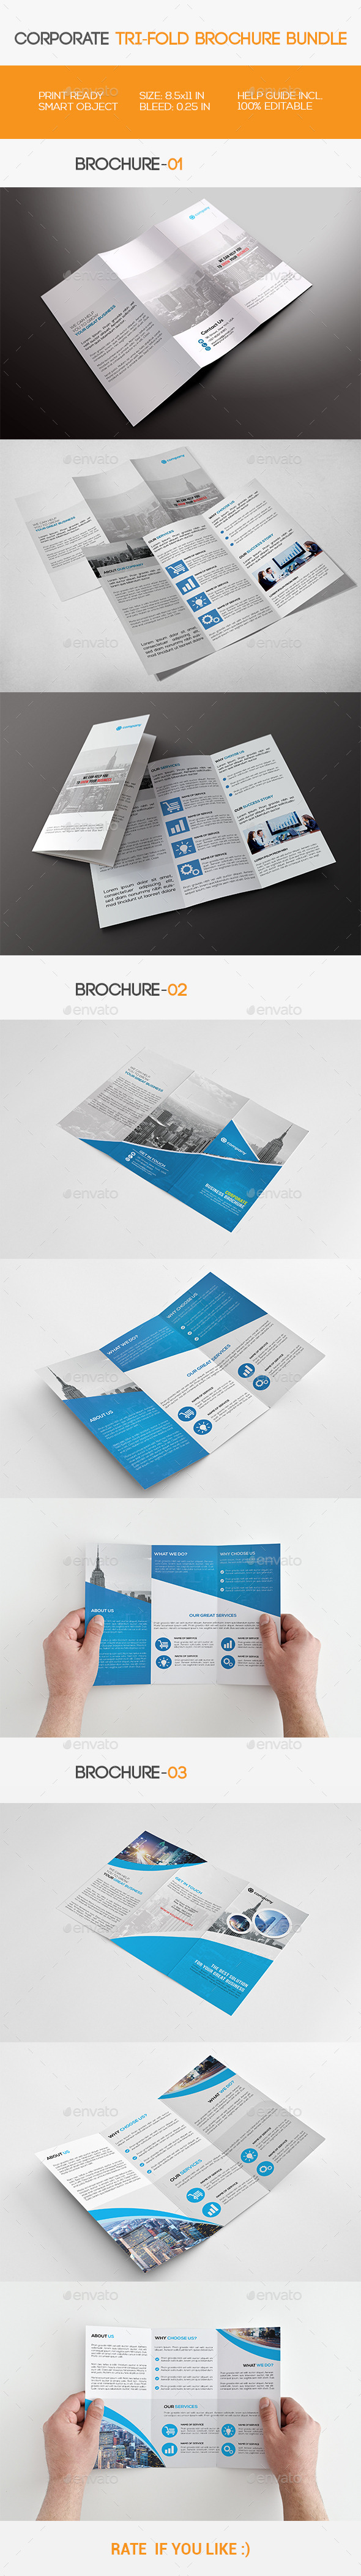 GraphicRiver Corporate Tri-fold Brochure Bundle 11515699